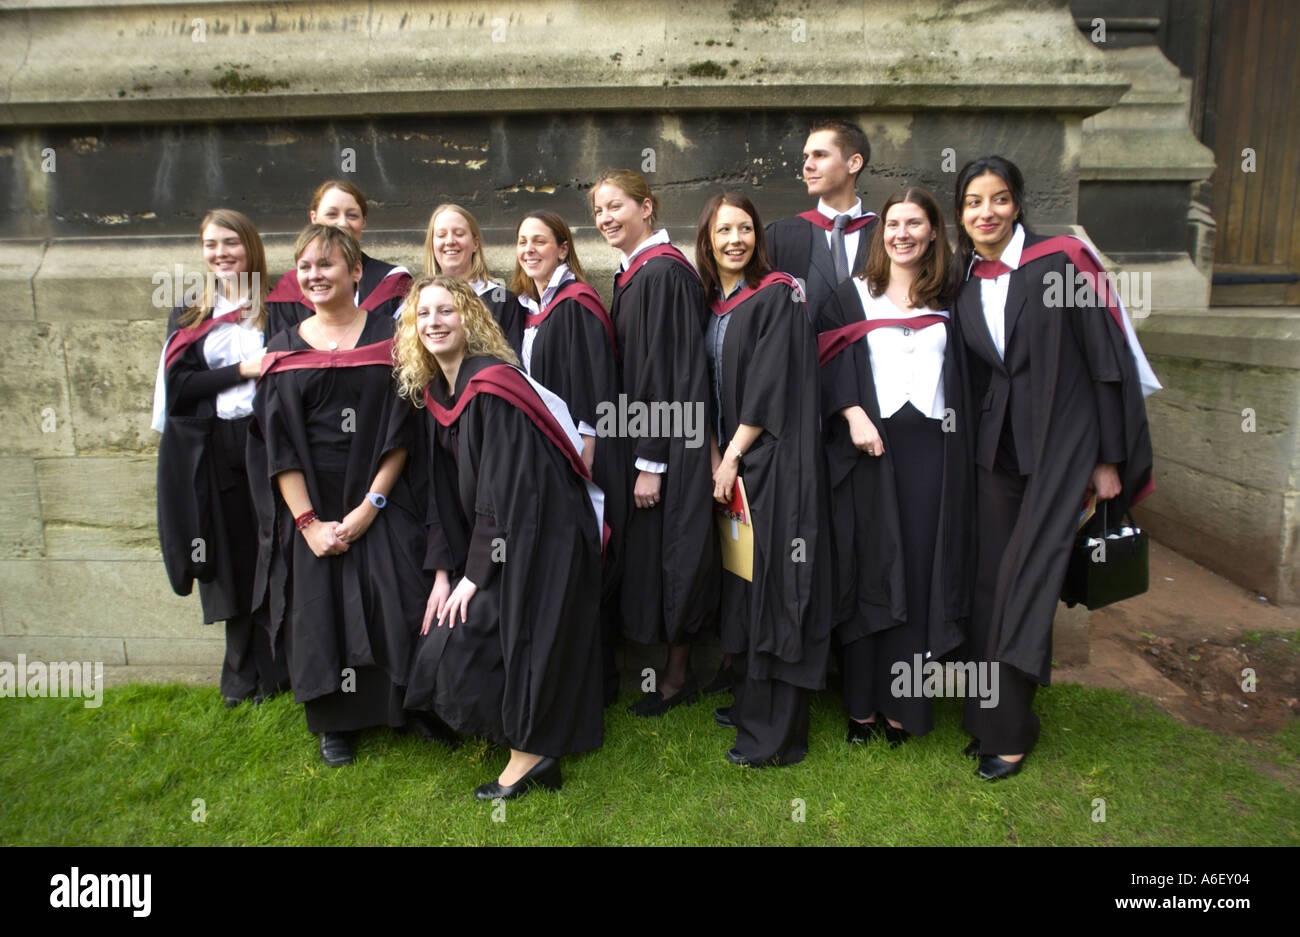 University bristol graduation what to wear recommend dress in everyday in 2019